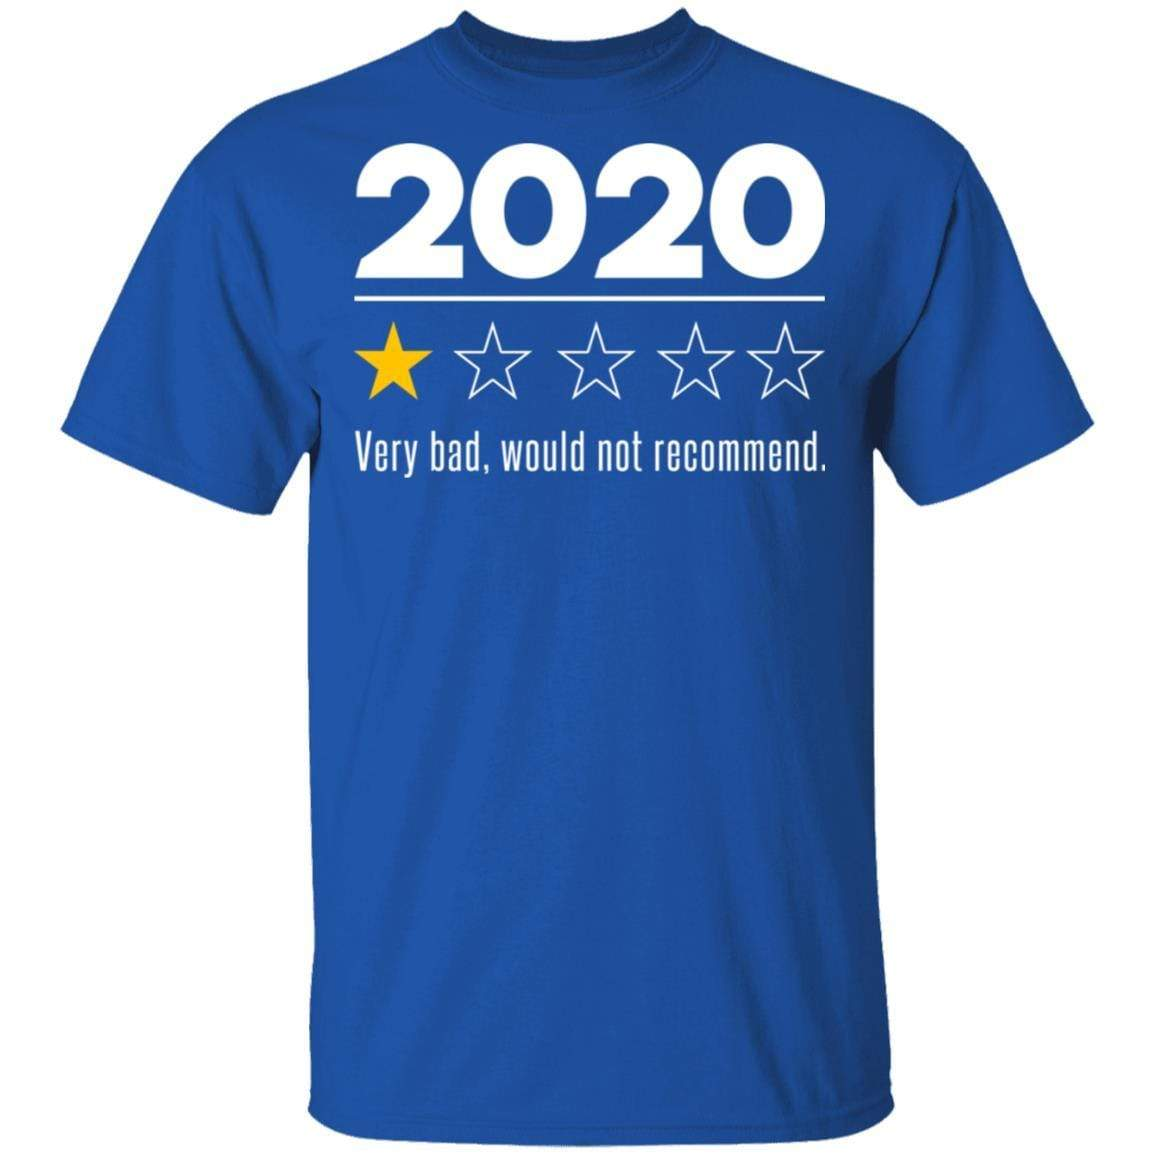 2020 This Year Very Bad Would Not Recommend T-Shirts, Hoodies 1049-9971-88282841-48286 - Tee Ript